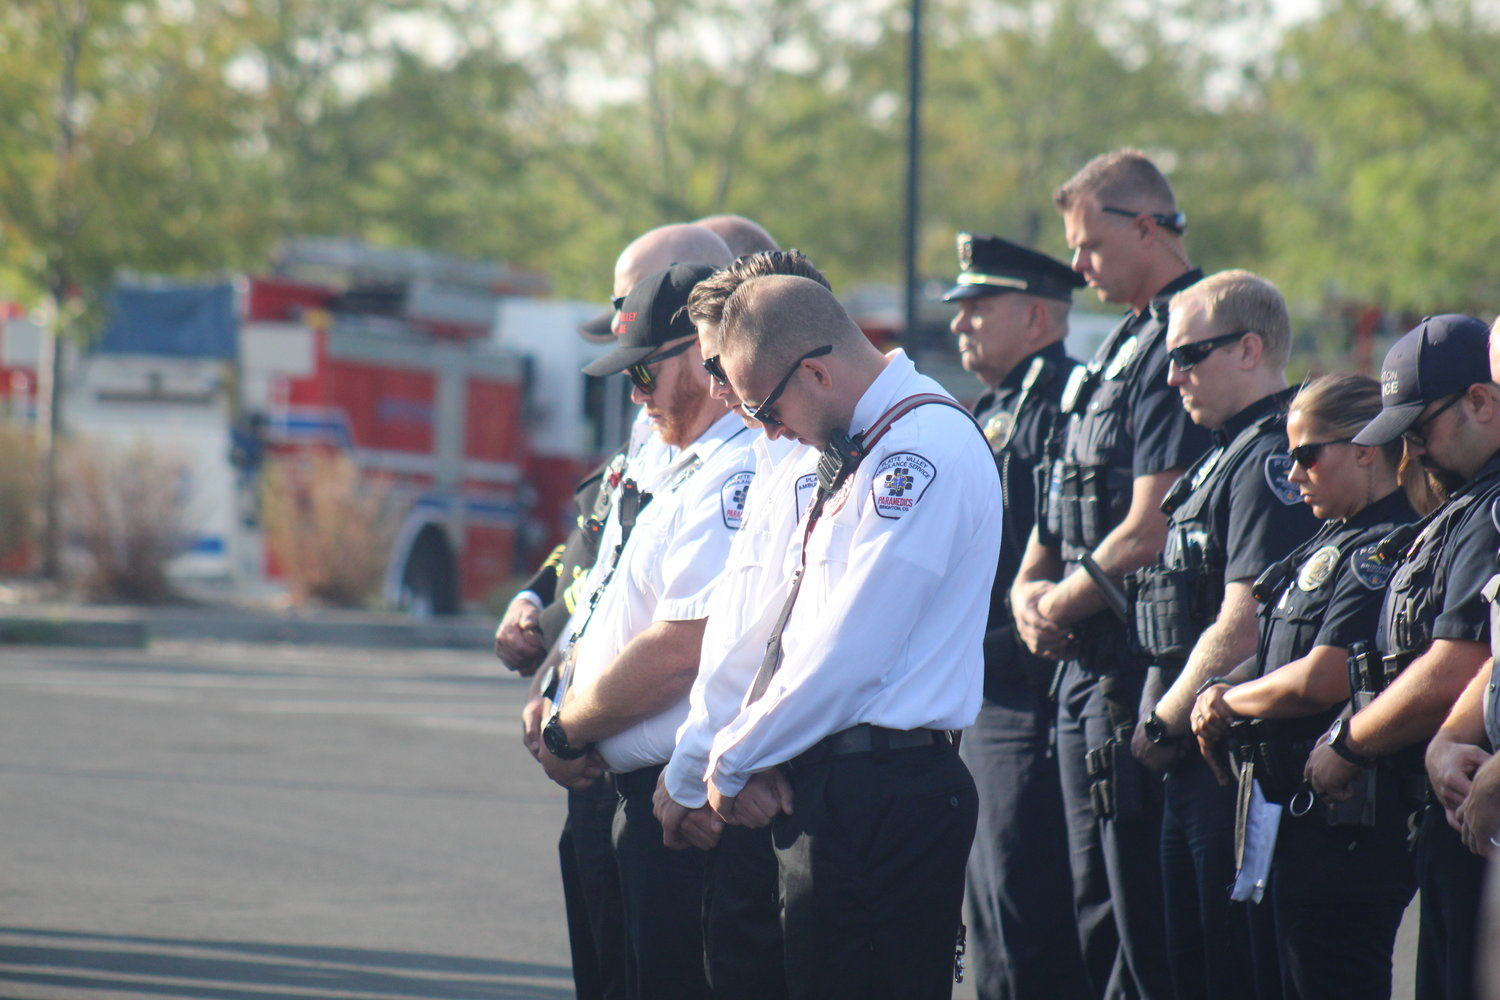 Members of the Platte Valley Ambulance Service and Brighton police reflect during the 20th anniversary of 9/11 program outside Brighton City Hall.